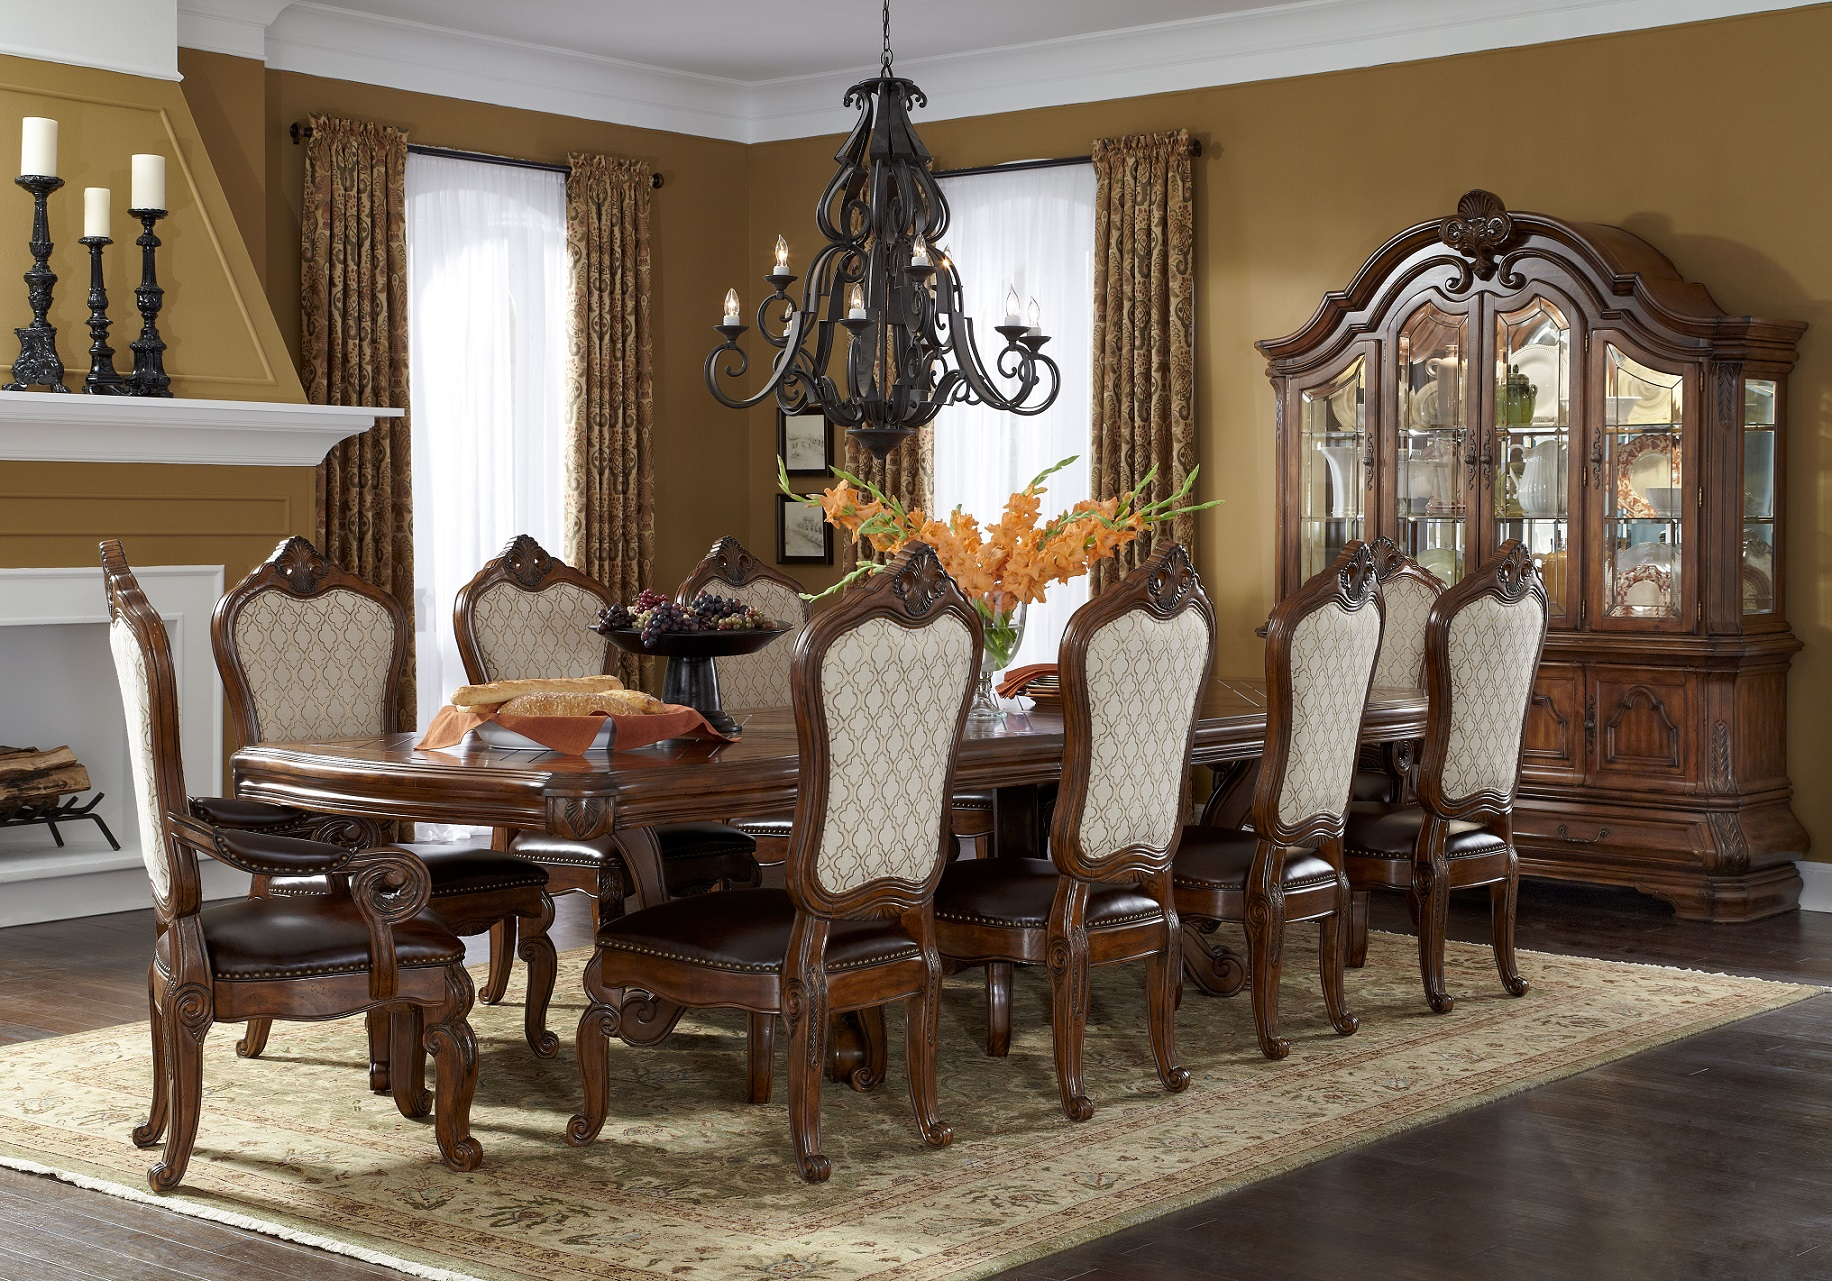 Home » Dining Room » 11 Piece Dining Room Set